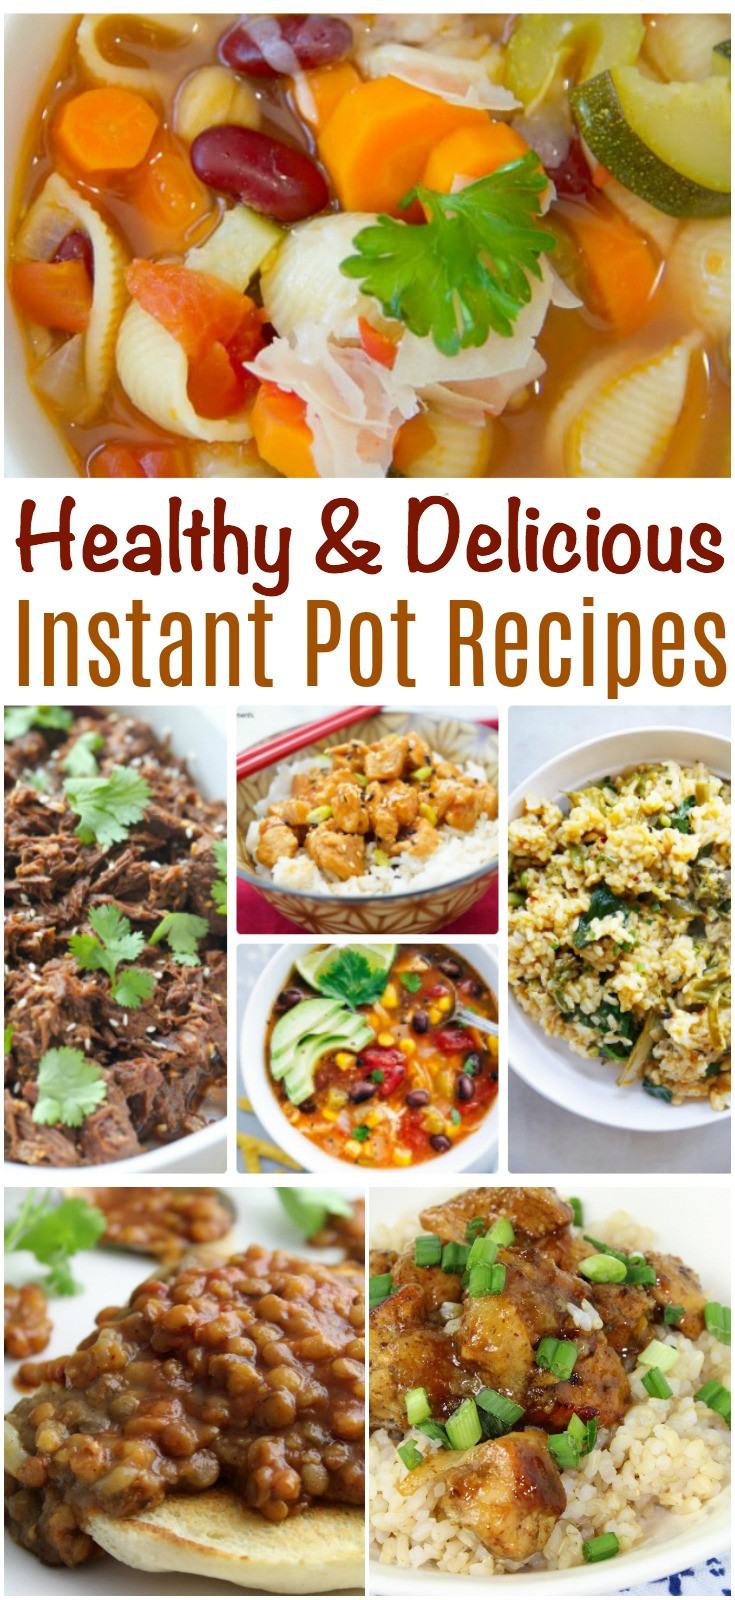 Instant Pot Recipes Healthy  Healthy and Delicious Instant Pot Recipes